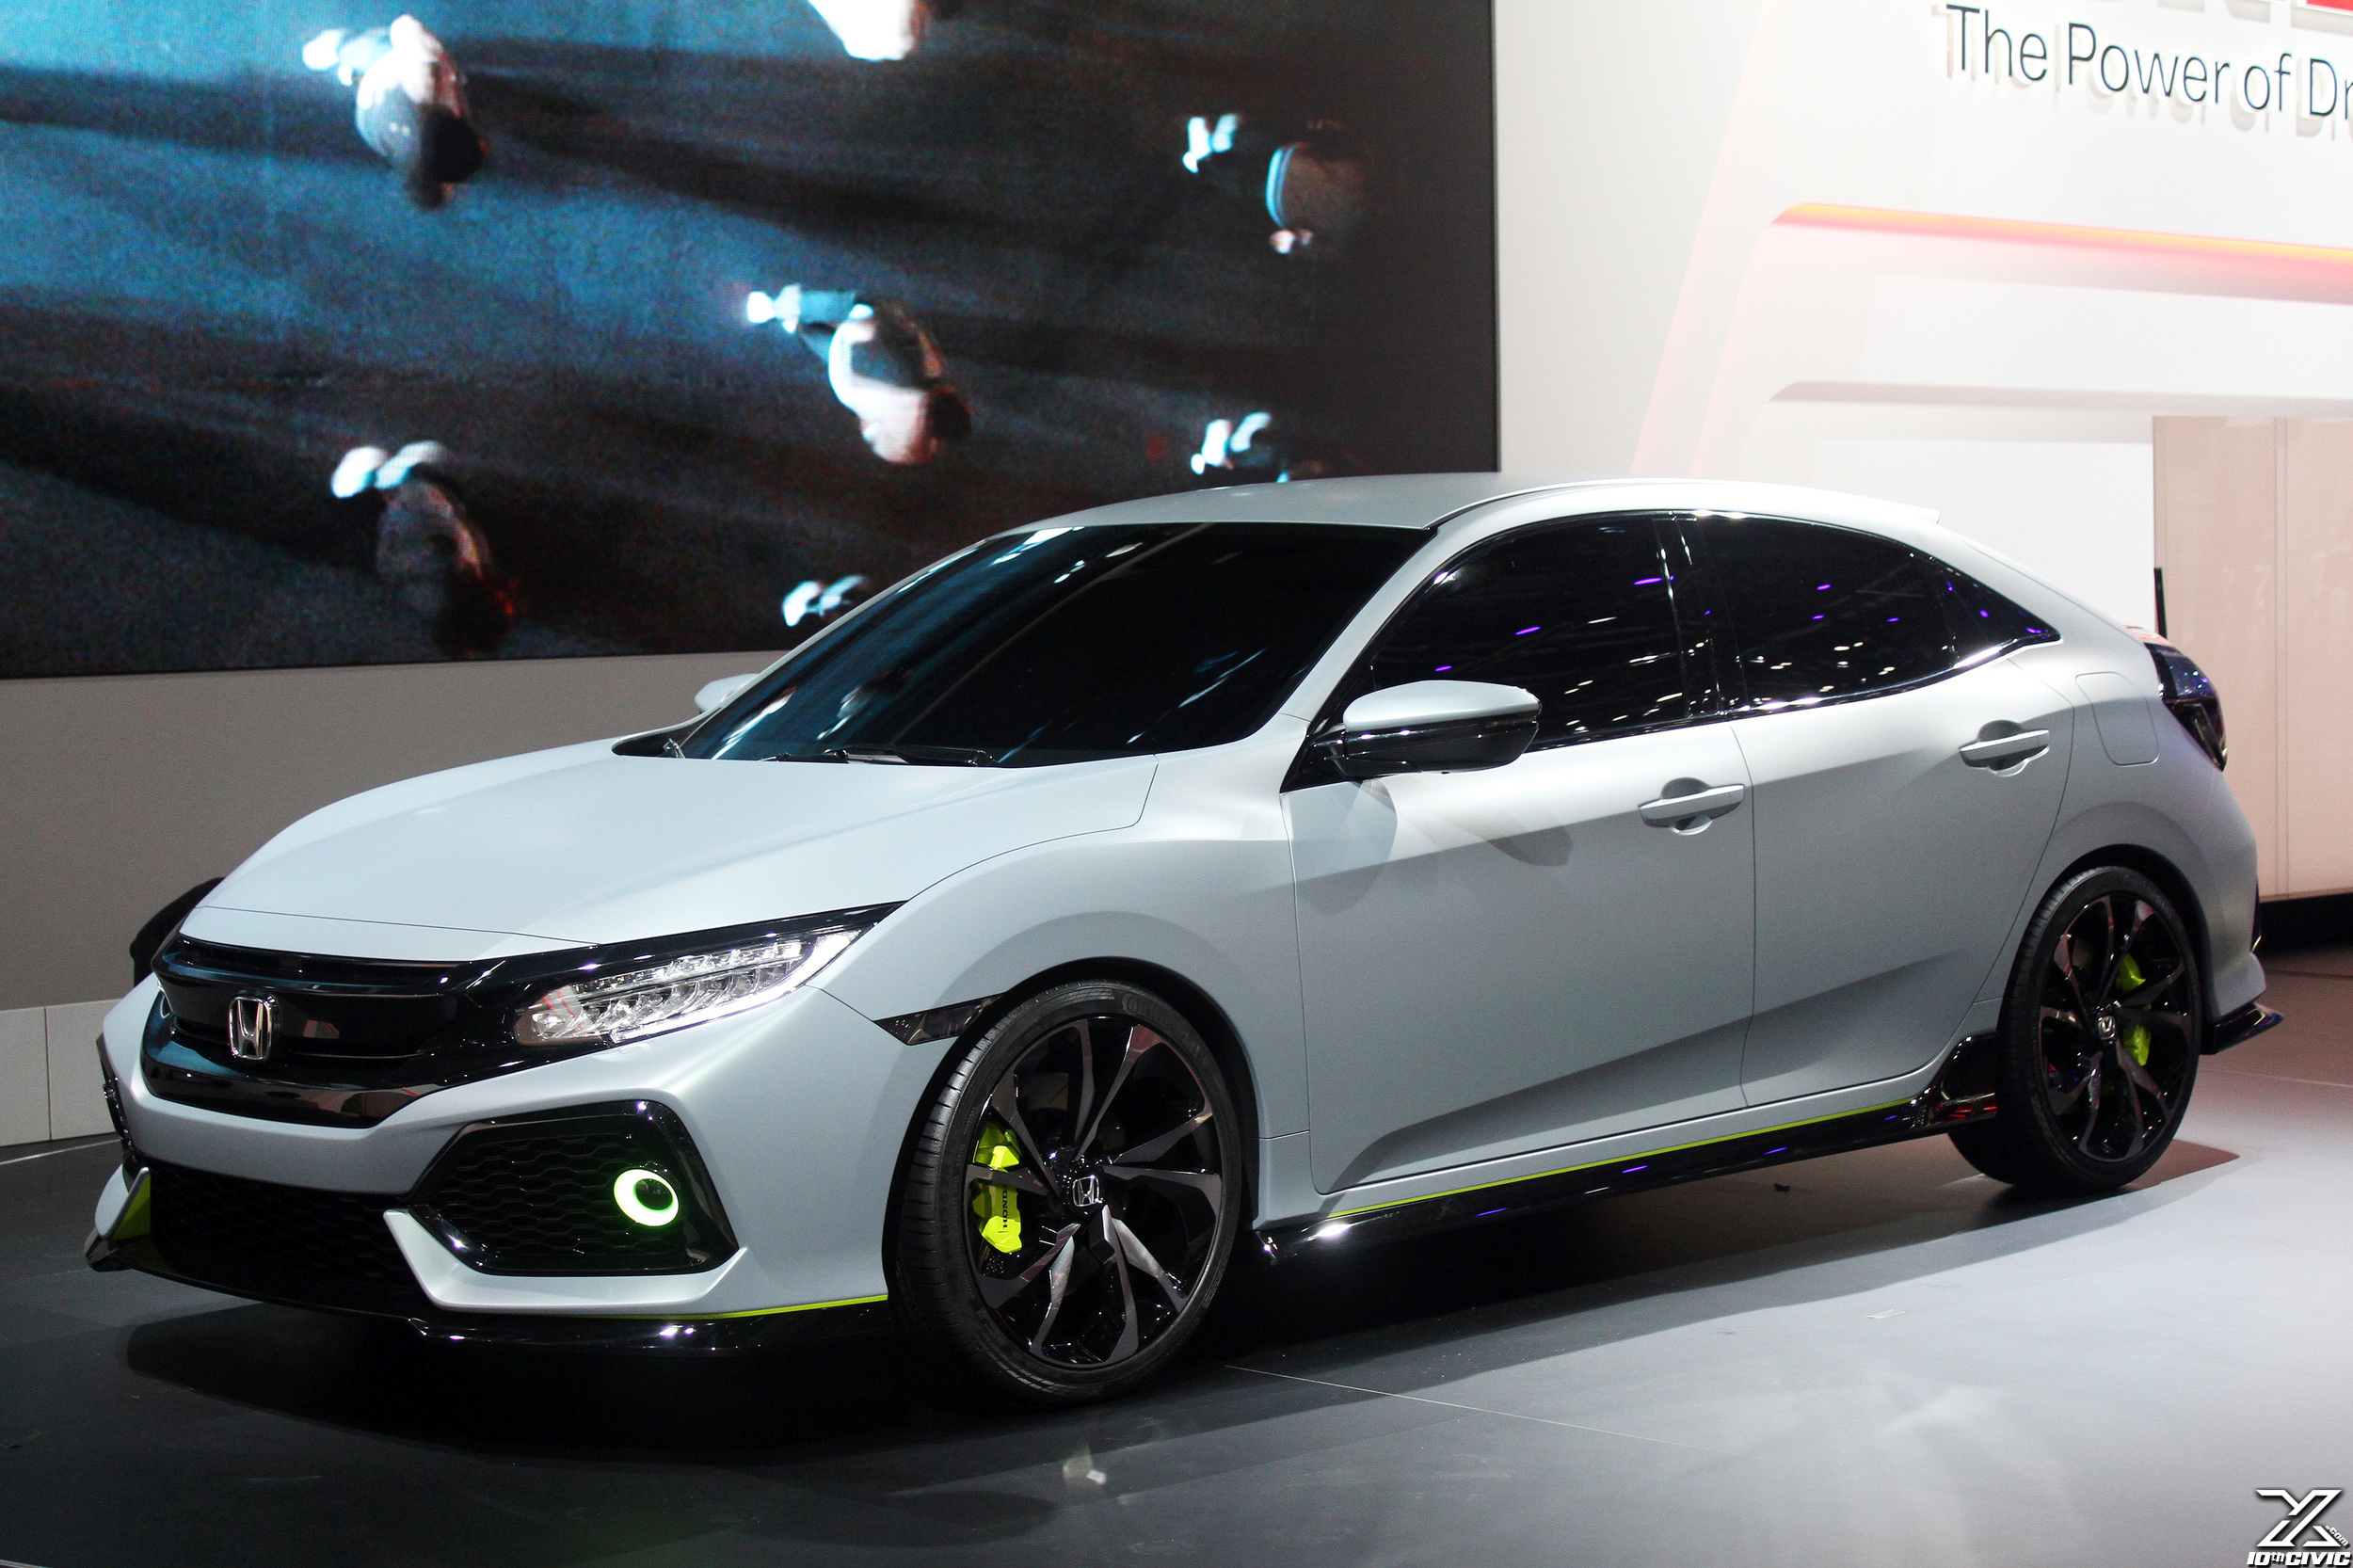 2017 Honda Civic Hatchback Spotted | 9th Generation Honda Civic Forum